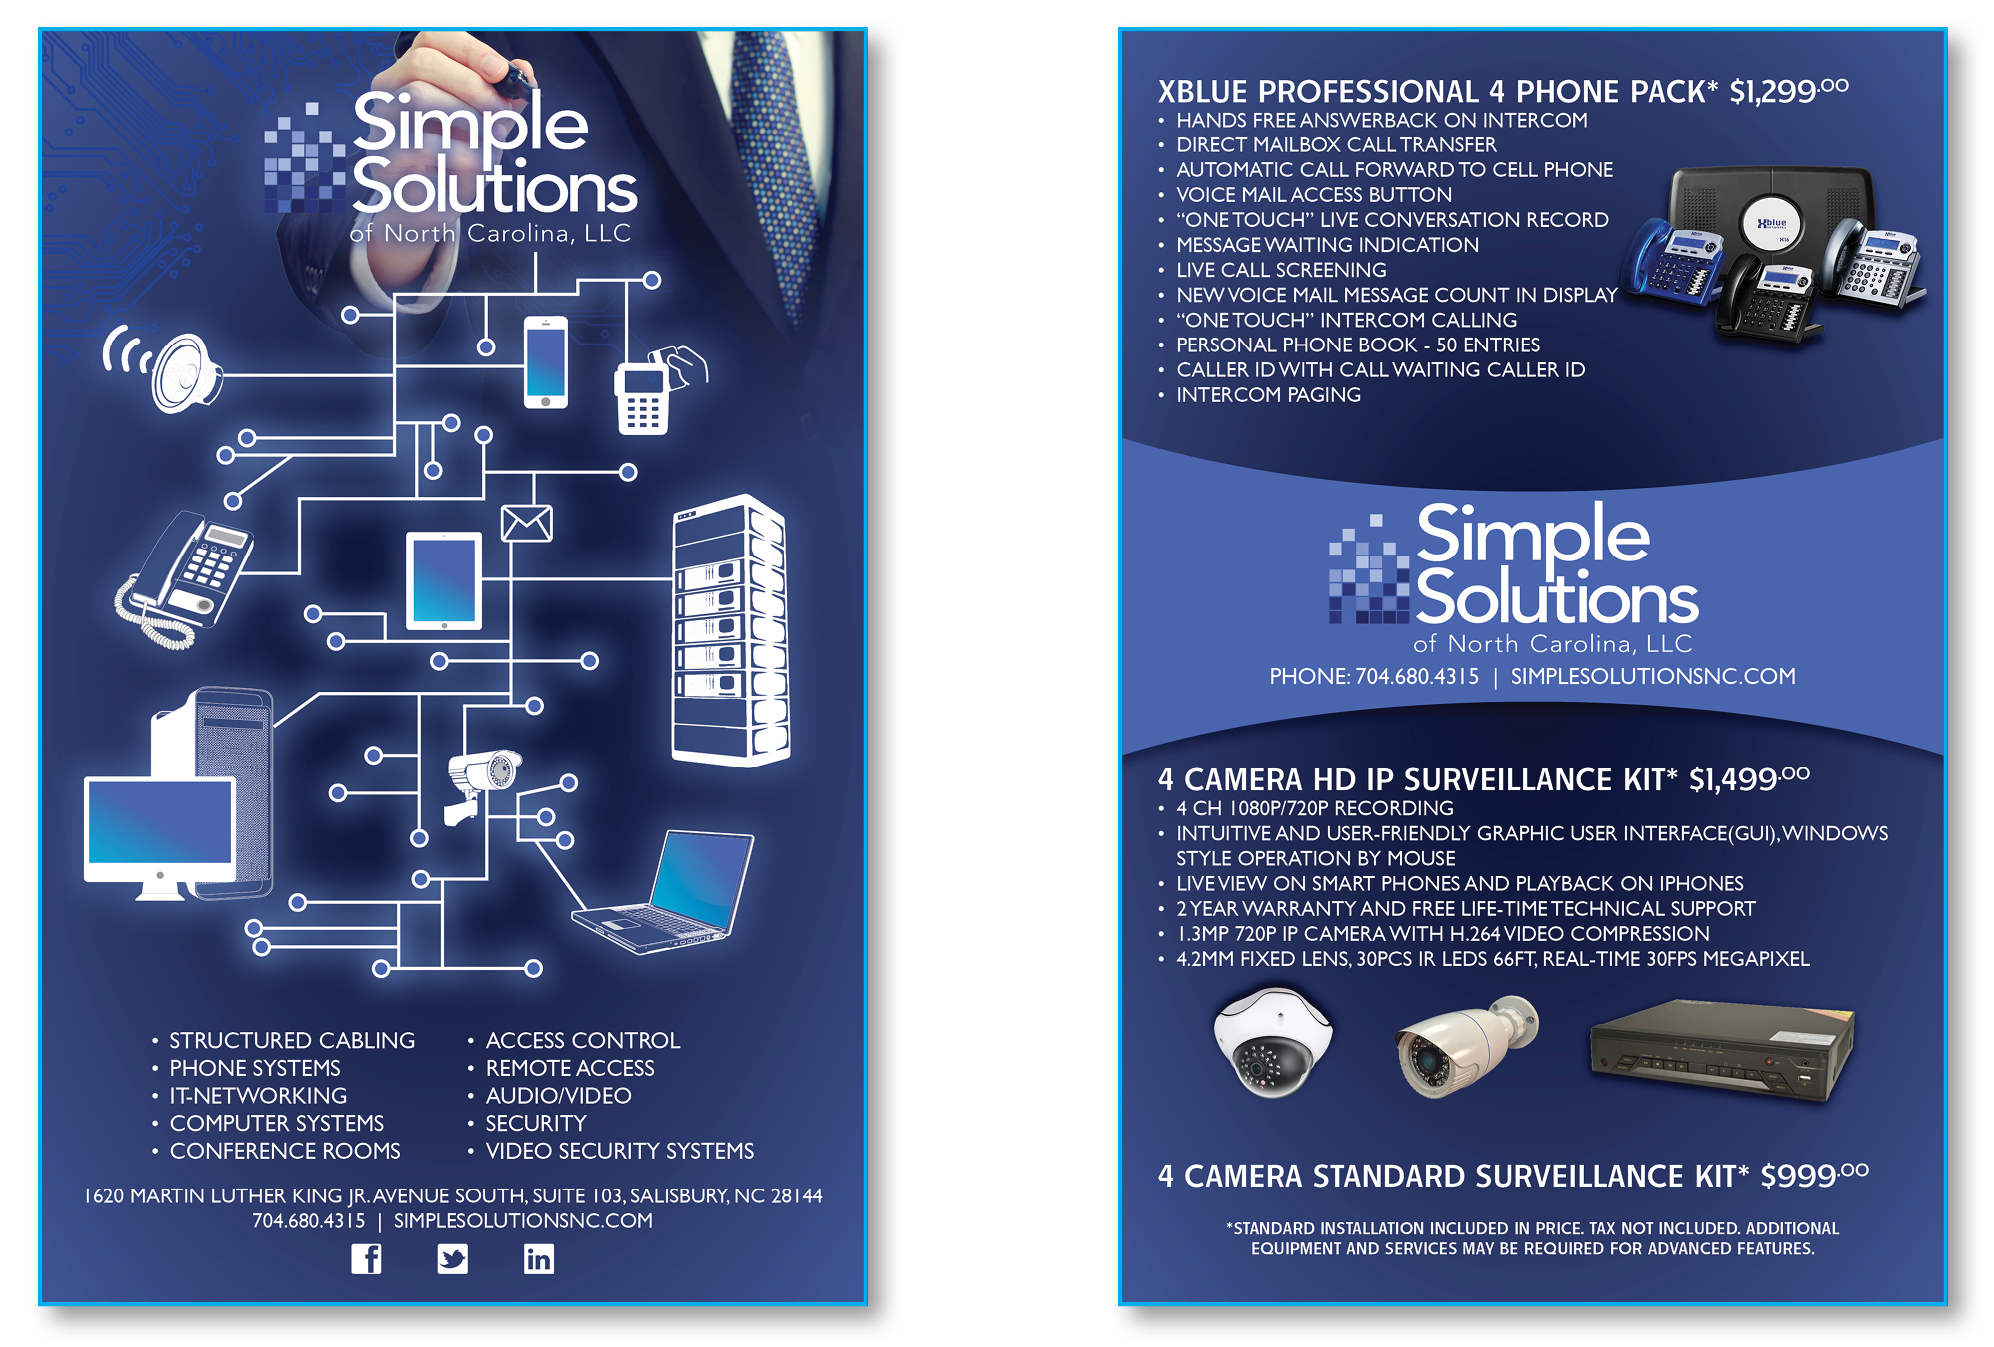 Simple Solutions of North Carolina, LLC Postcard